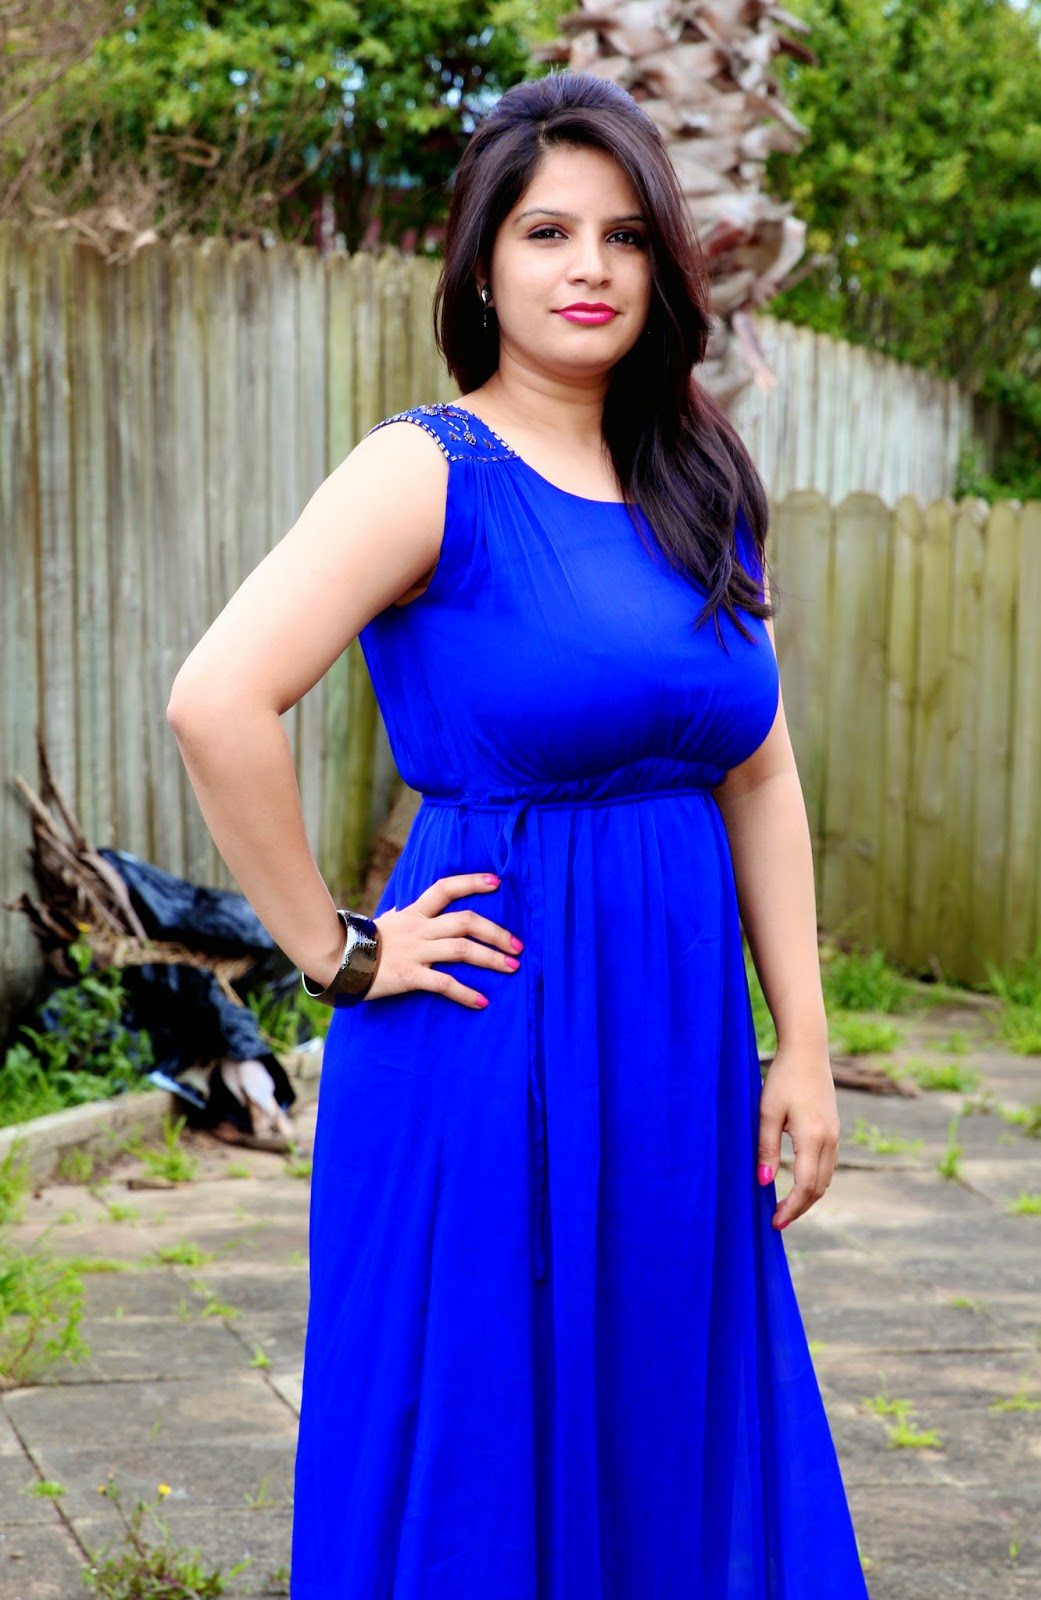 Indian lady in a blue gown, gowns for plus size women, decent looking gowns, all purpose gowns, simple elegant gown